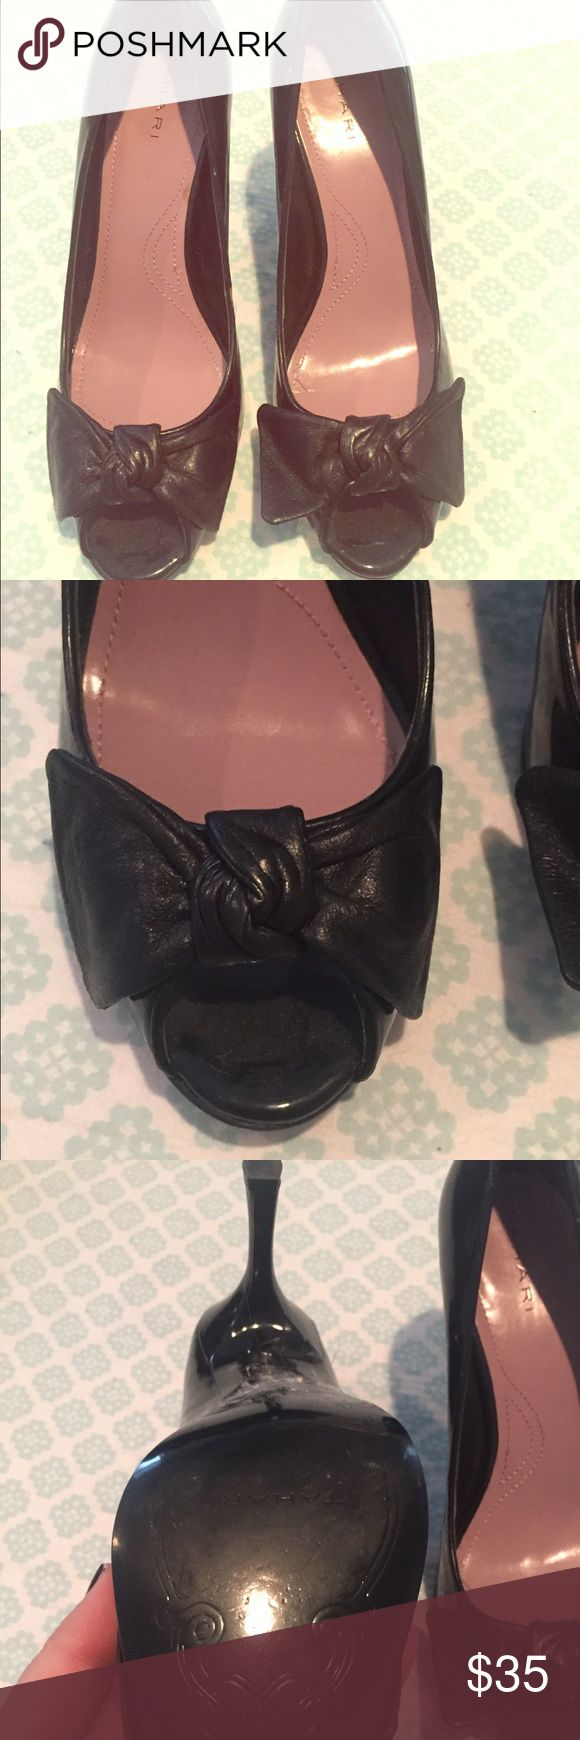 Tahari Black Leather Bow Peep Toe Heels 9 Adorable peep toe heels by Tahari with black leather bow - size 9.  Brand new never worn...look at the bottom!  I have too many shoes and am trying to downsize in my city apartment :) don't want to give them up but don't have the space. Tahari Shoes Heels